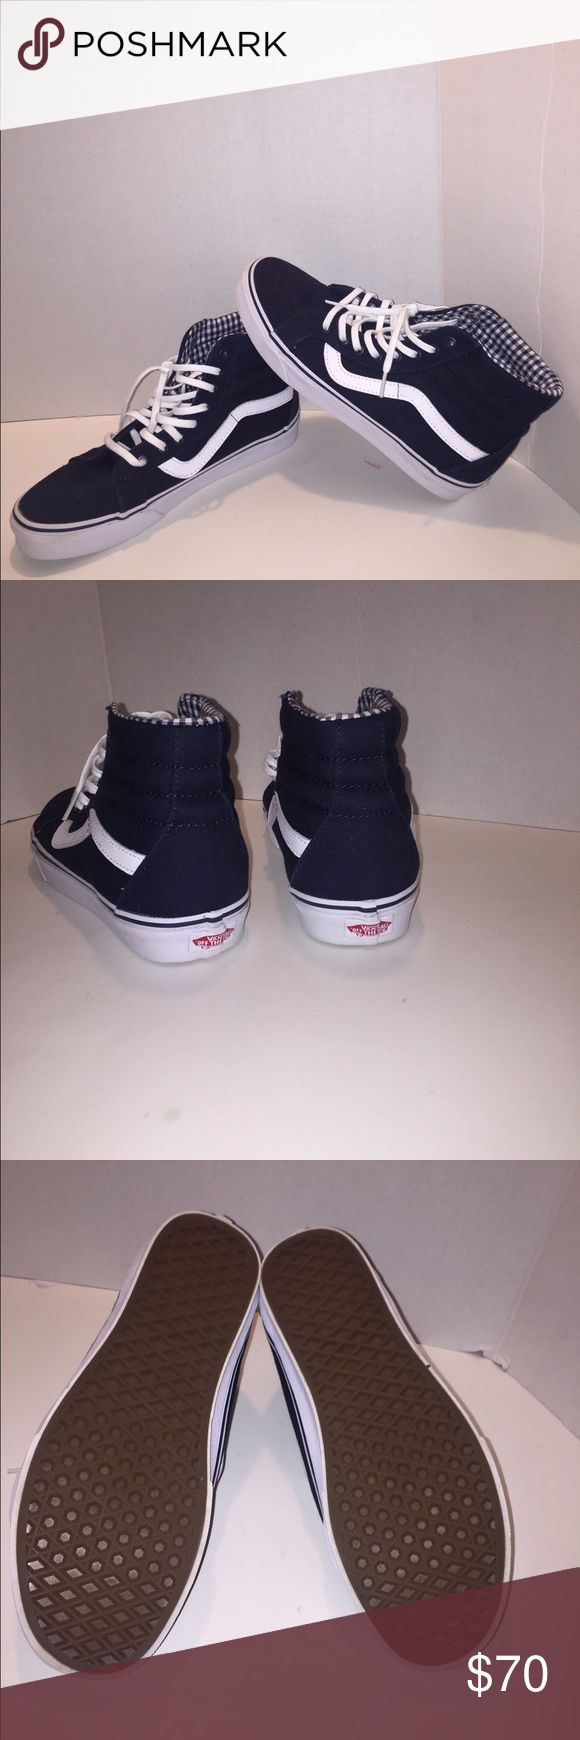 Ski-8 navy blue vans Dead stock ski-8 Navy blue vans. Vans Shoes Sneakers